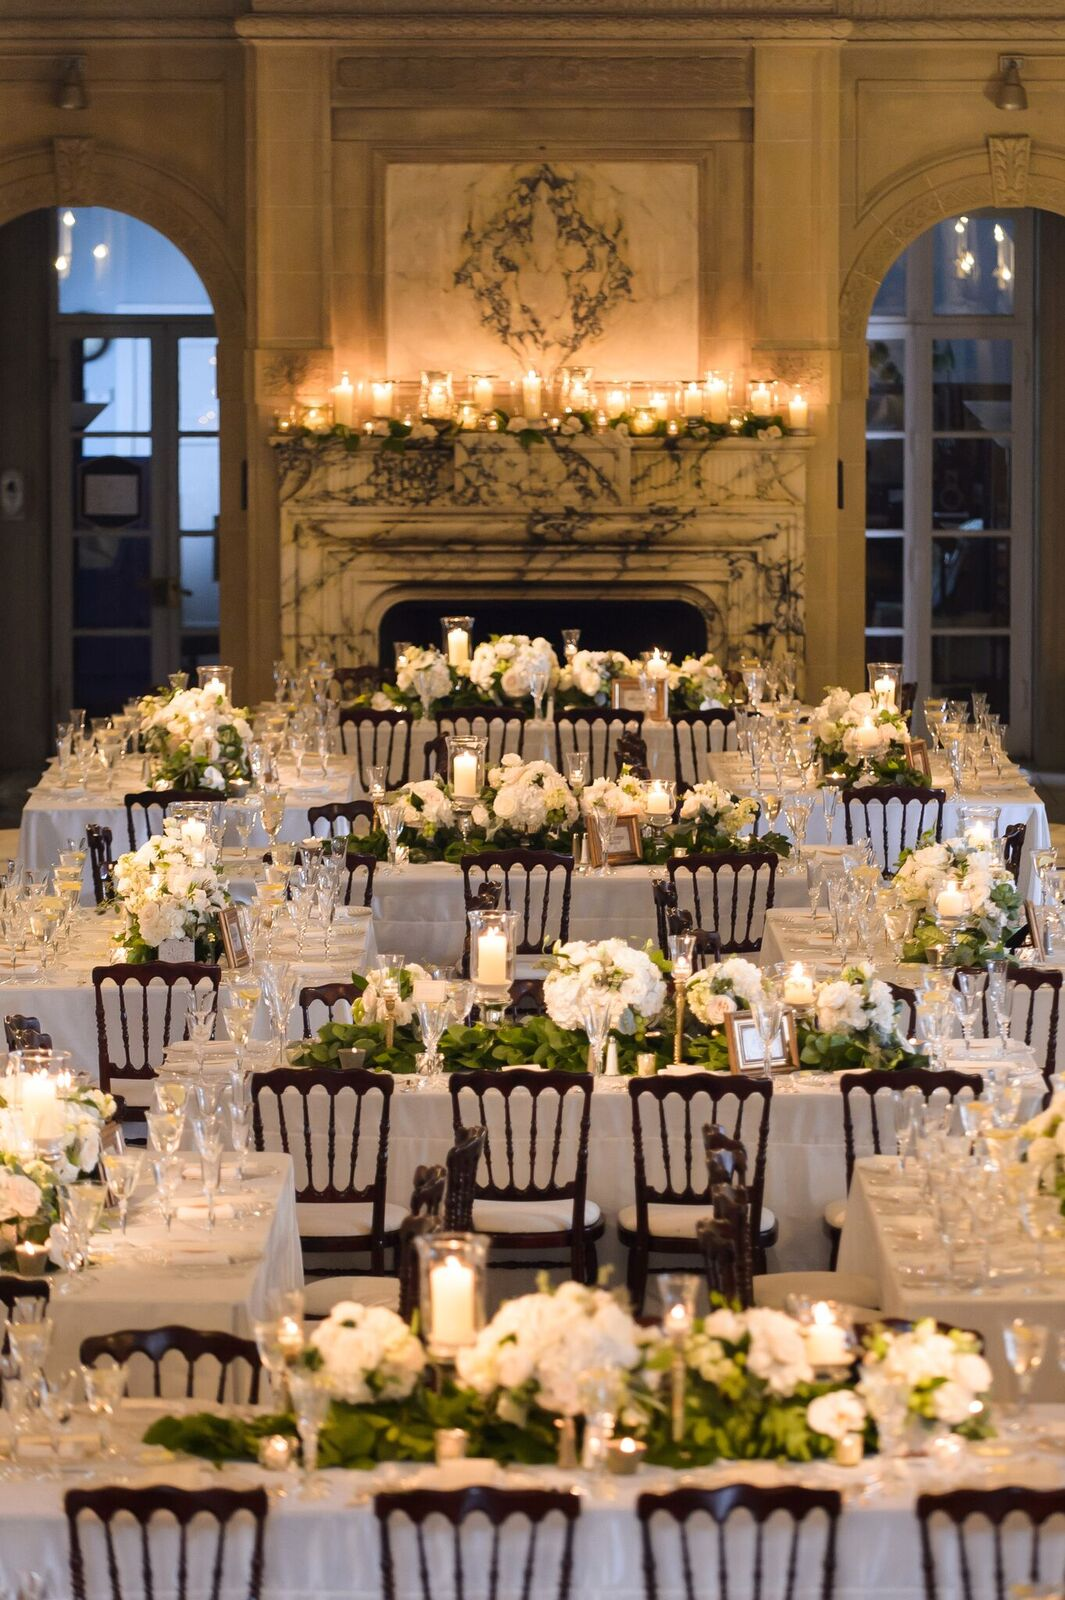 Posted by Bliss Weddings & Events - A Event Planner professional